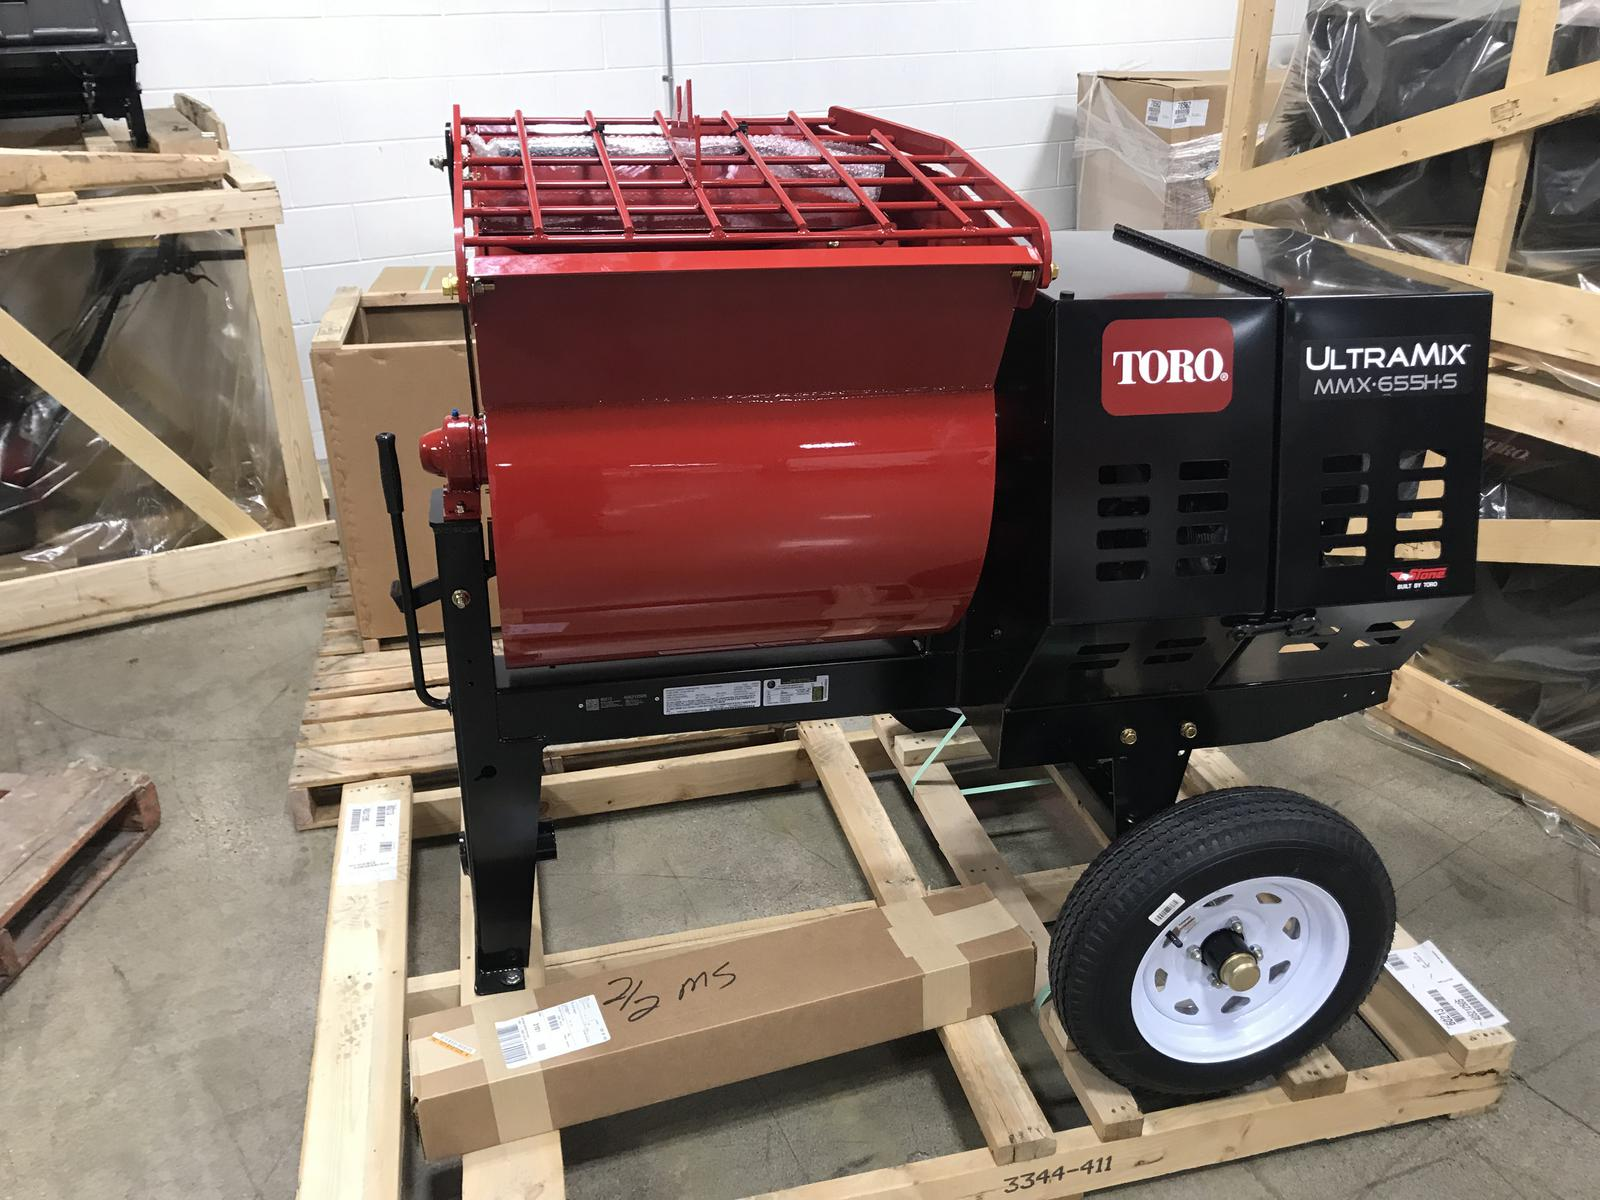 Mortar Mixer For Sale >> Toro Mmx 655h S Ultramix Mortar Mixer For Sale In Little Canada Mn